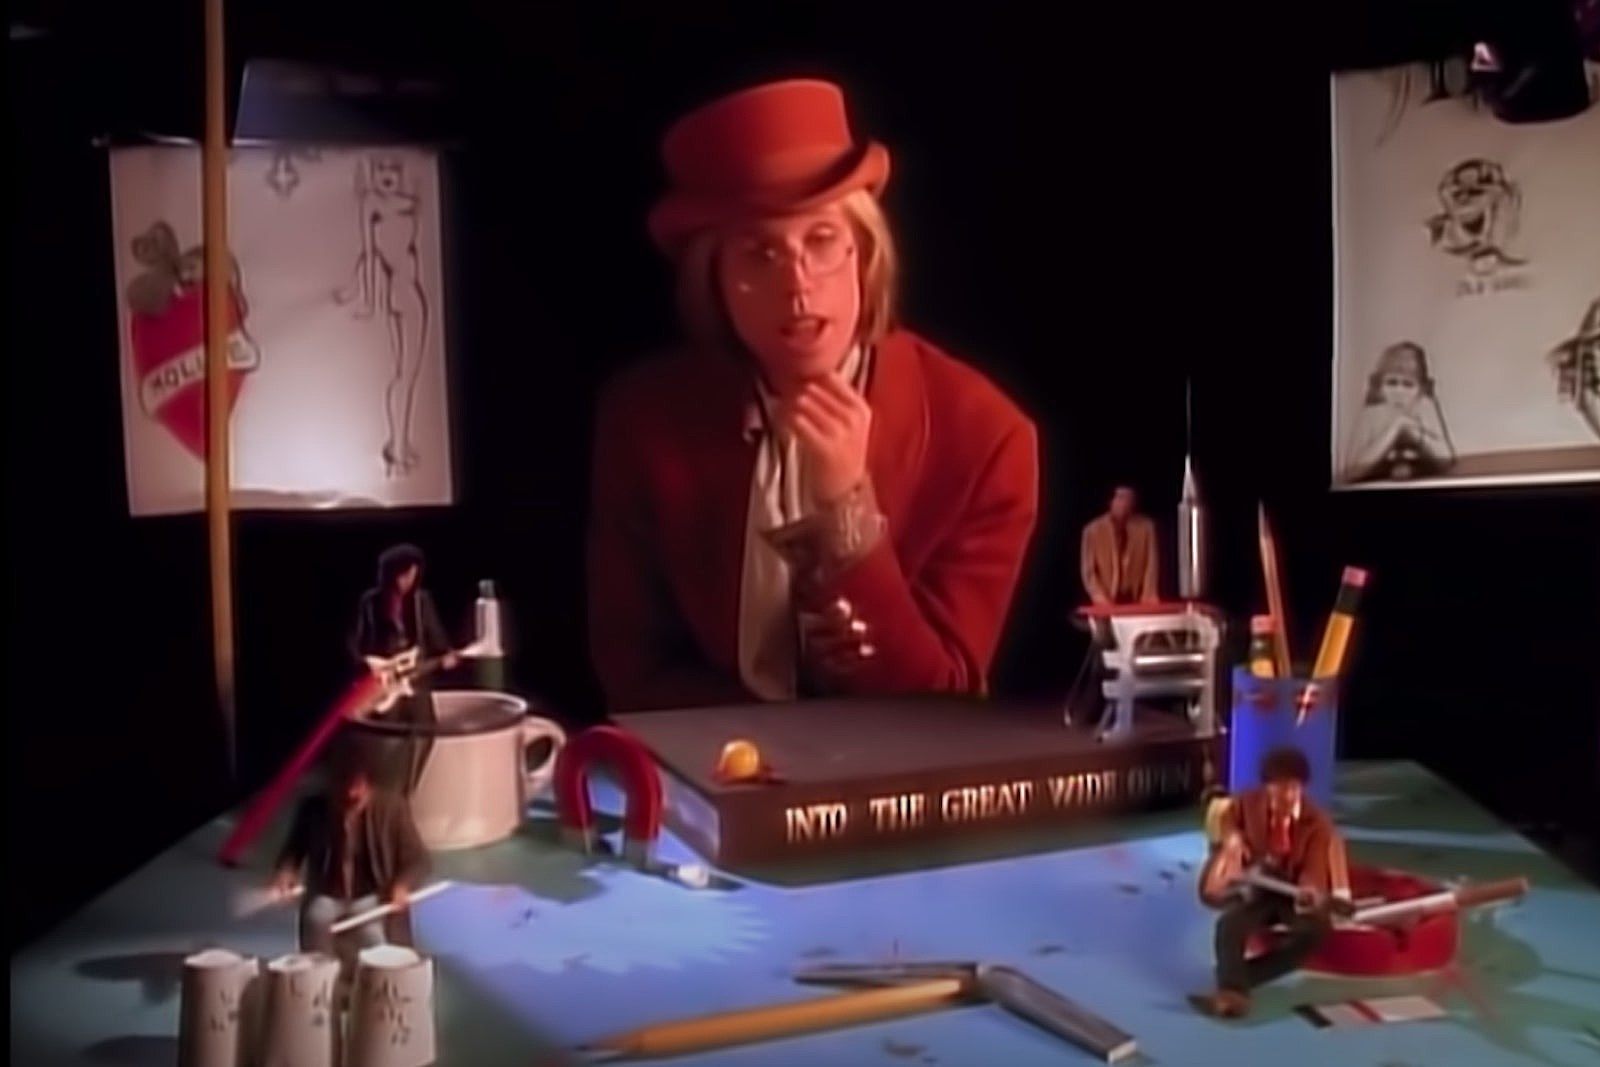 When Tom Petty Imagined a Failed Career in the 'Wide Open' Video